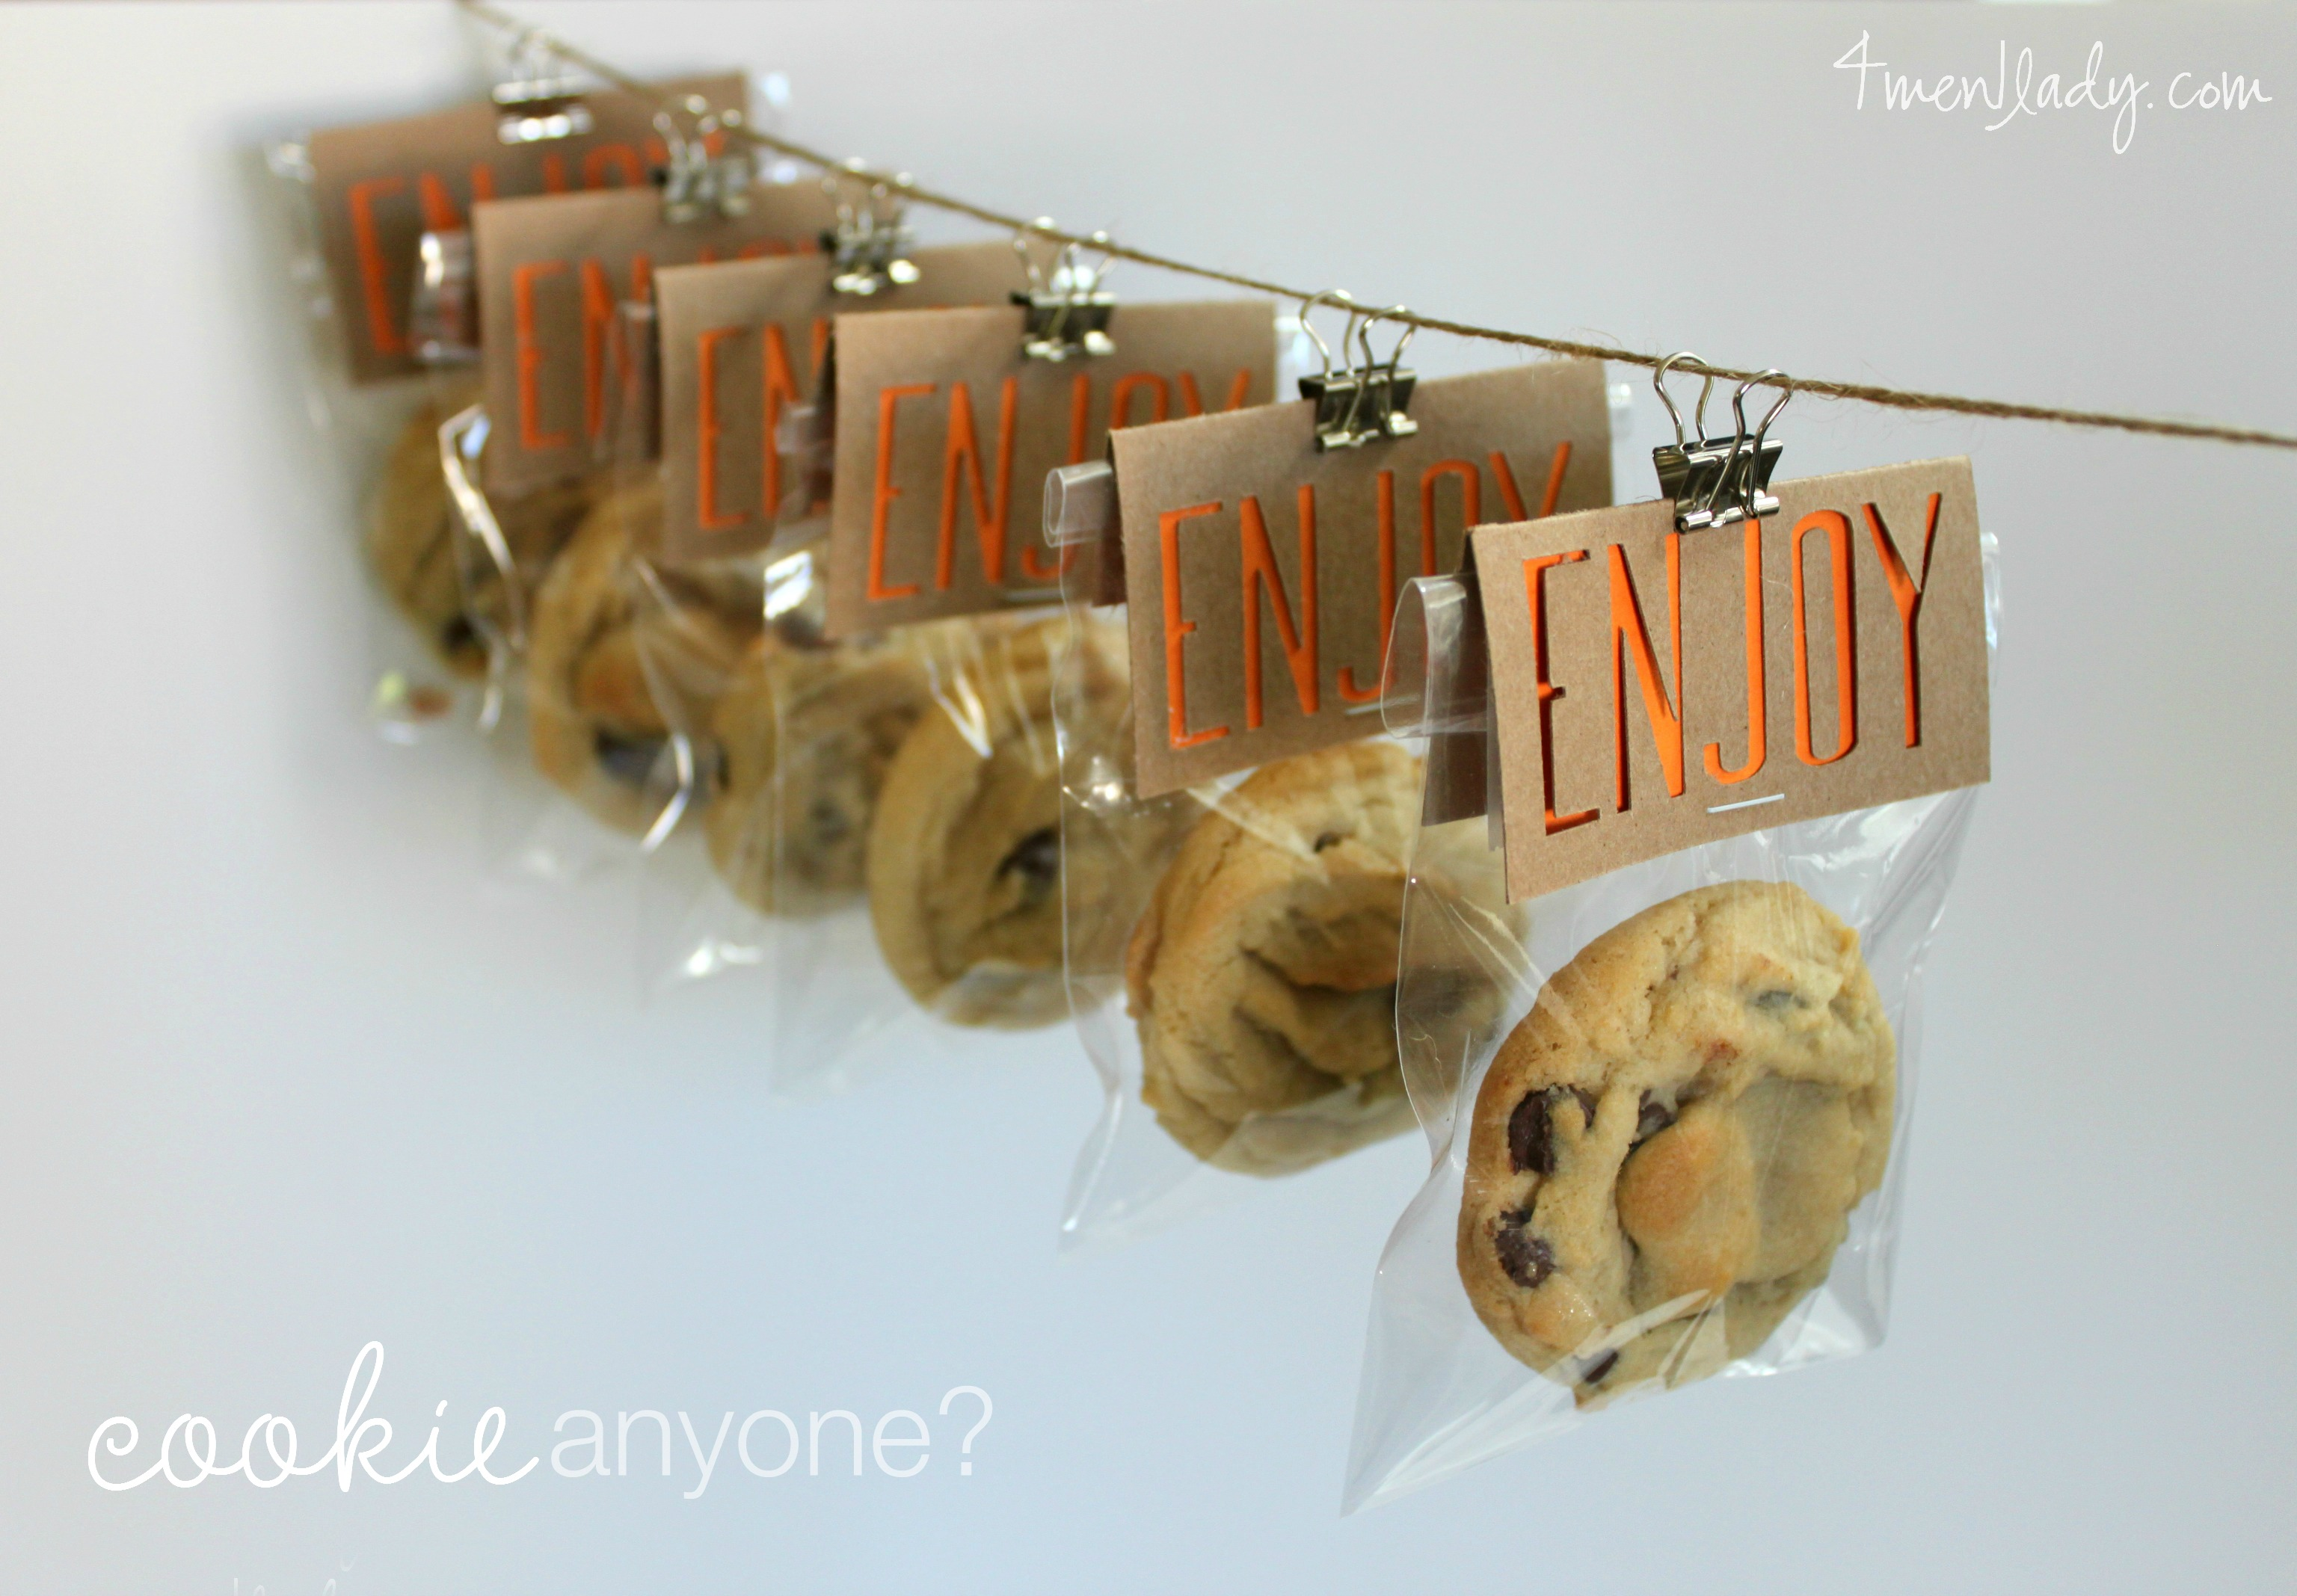 Cookie party favors made with Cricut Explore.